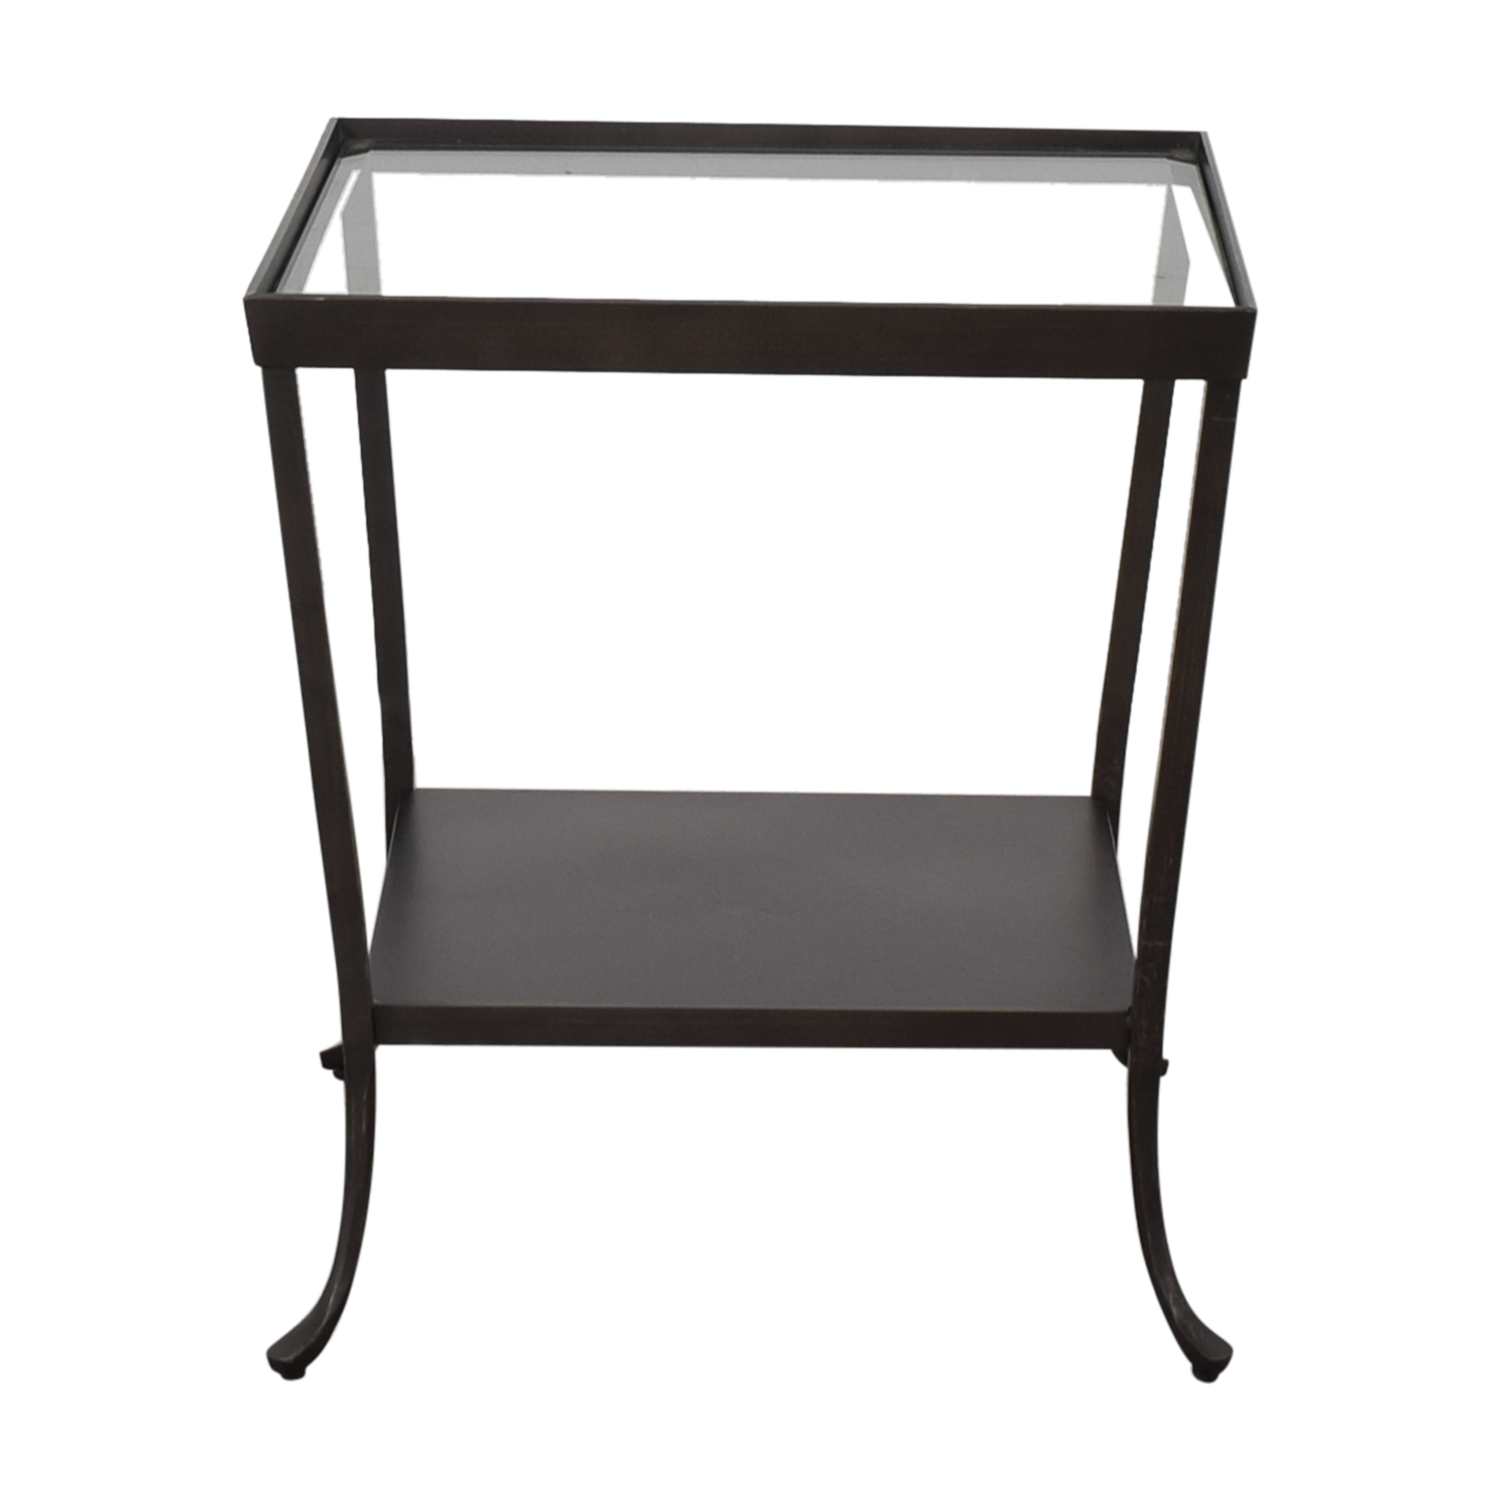 Crate & Barrel Side Table sale